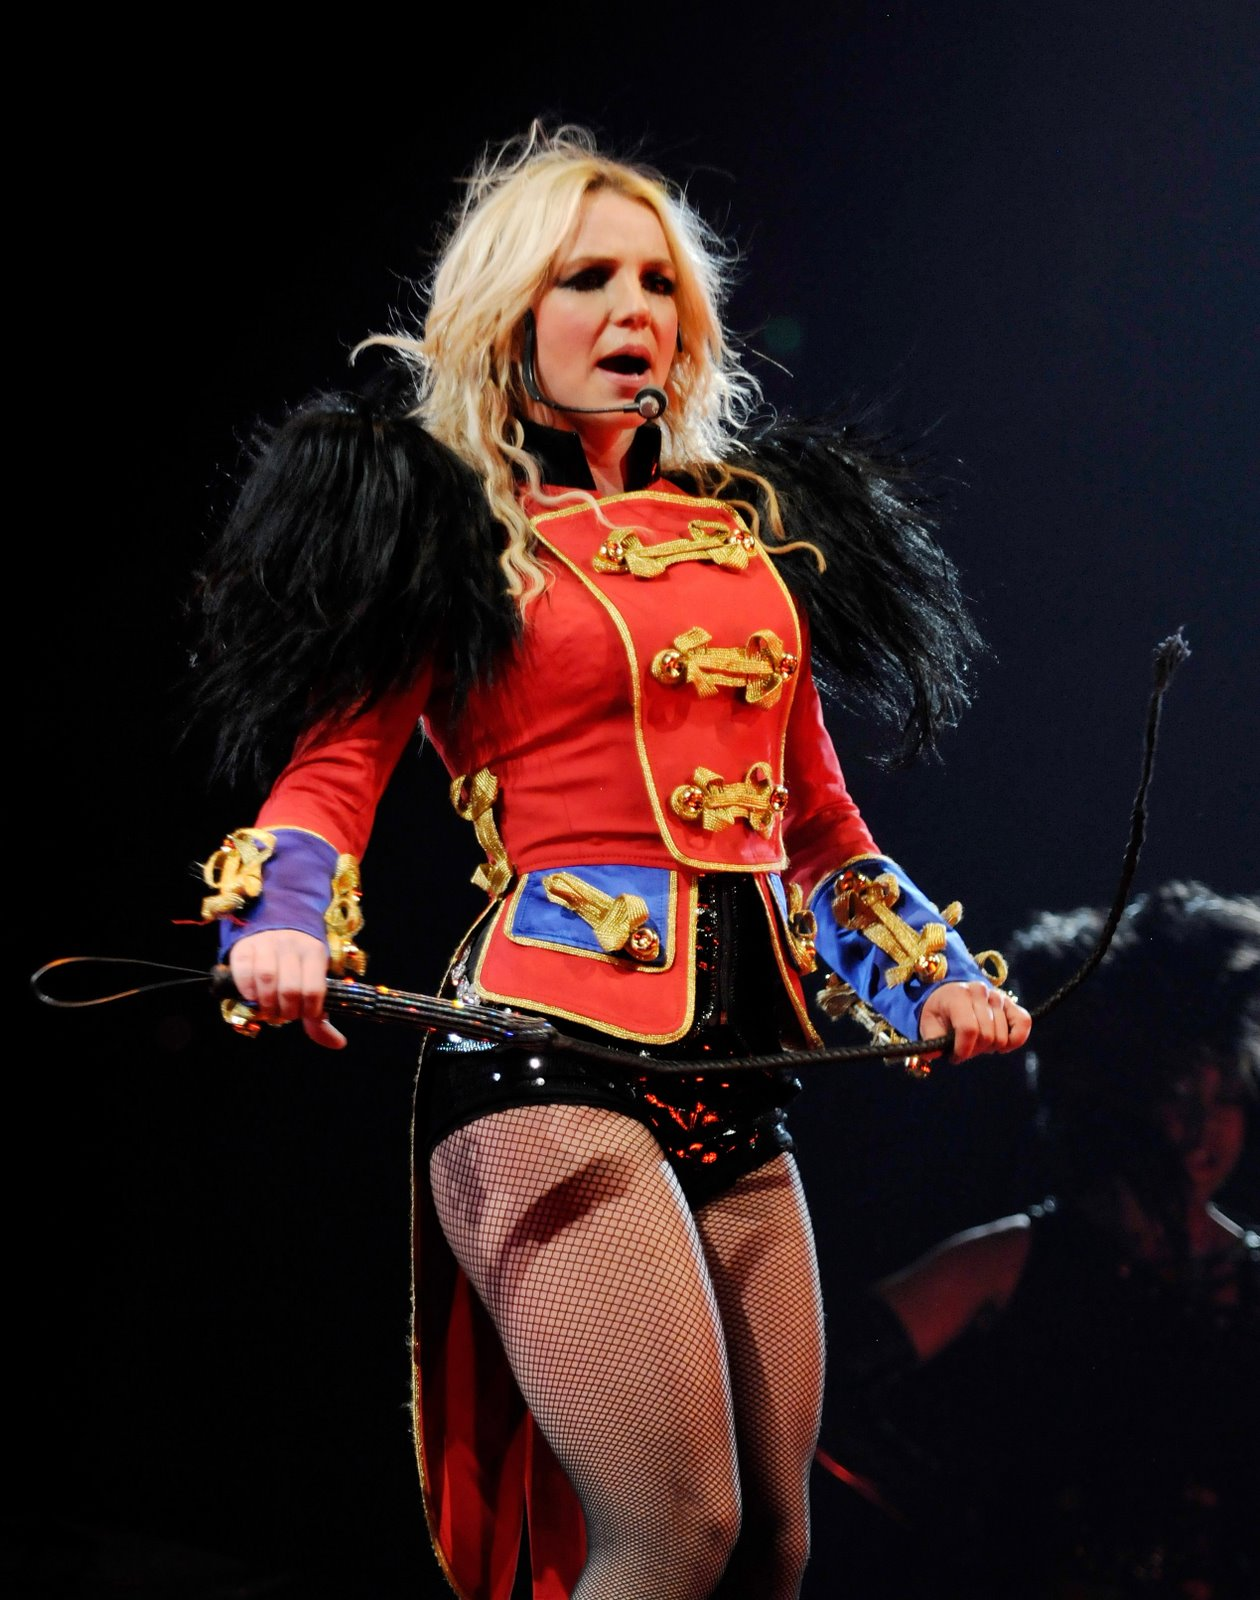 [66878_babayaga_Britney_Spears_The_Circus_Starring_Britney_Spears_Performance_03-03-2009_016_123_105lo.jpg]